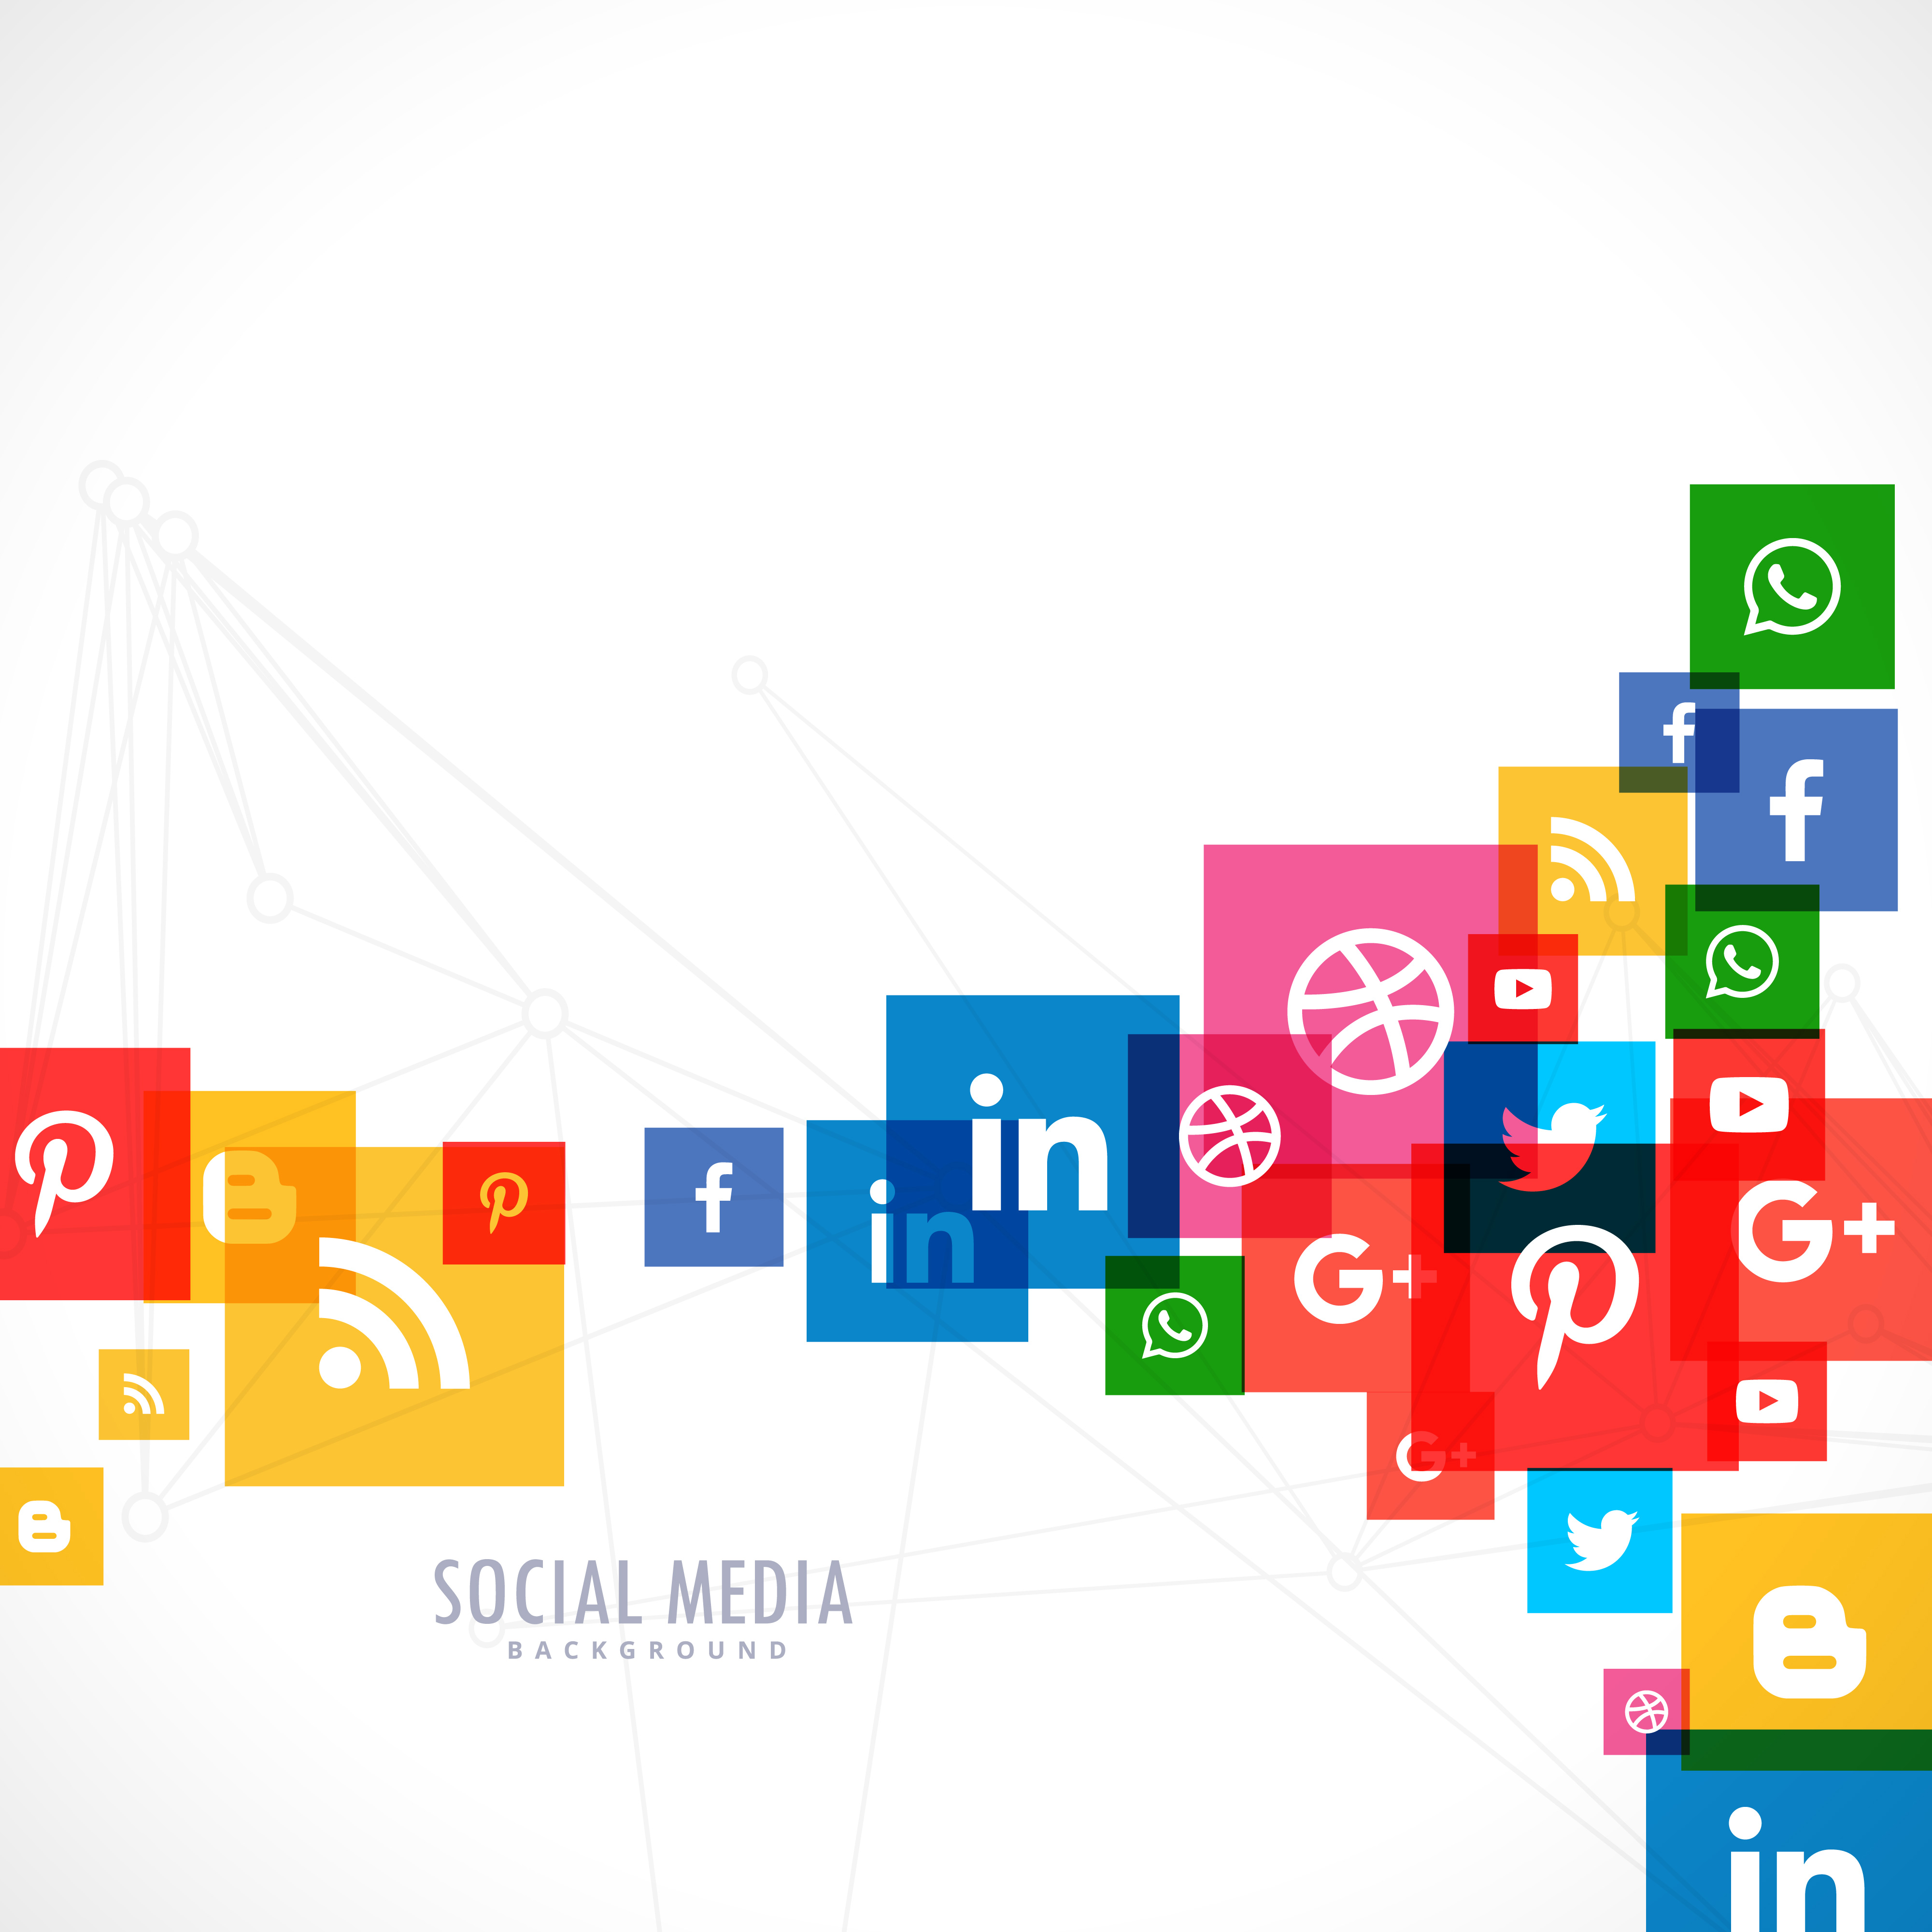 vector-social-media-icons-background.jpg